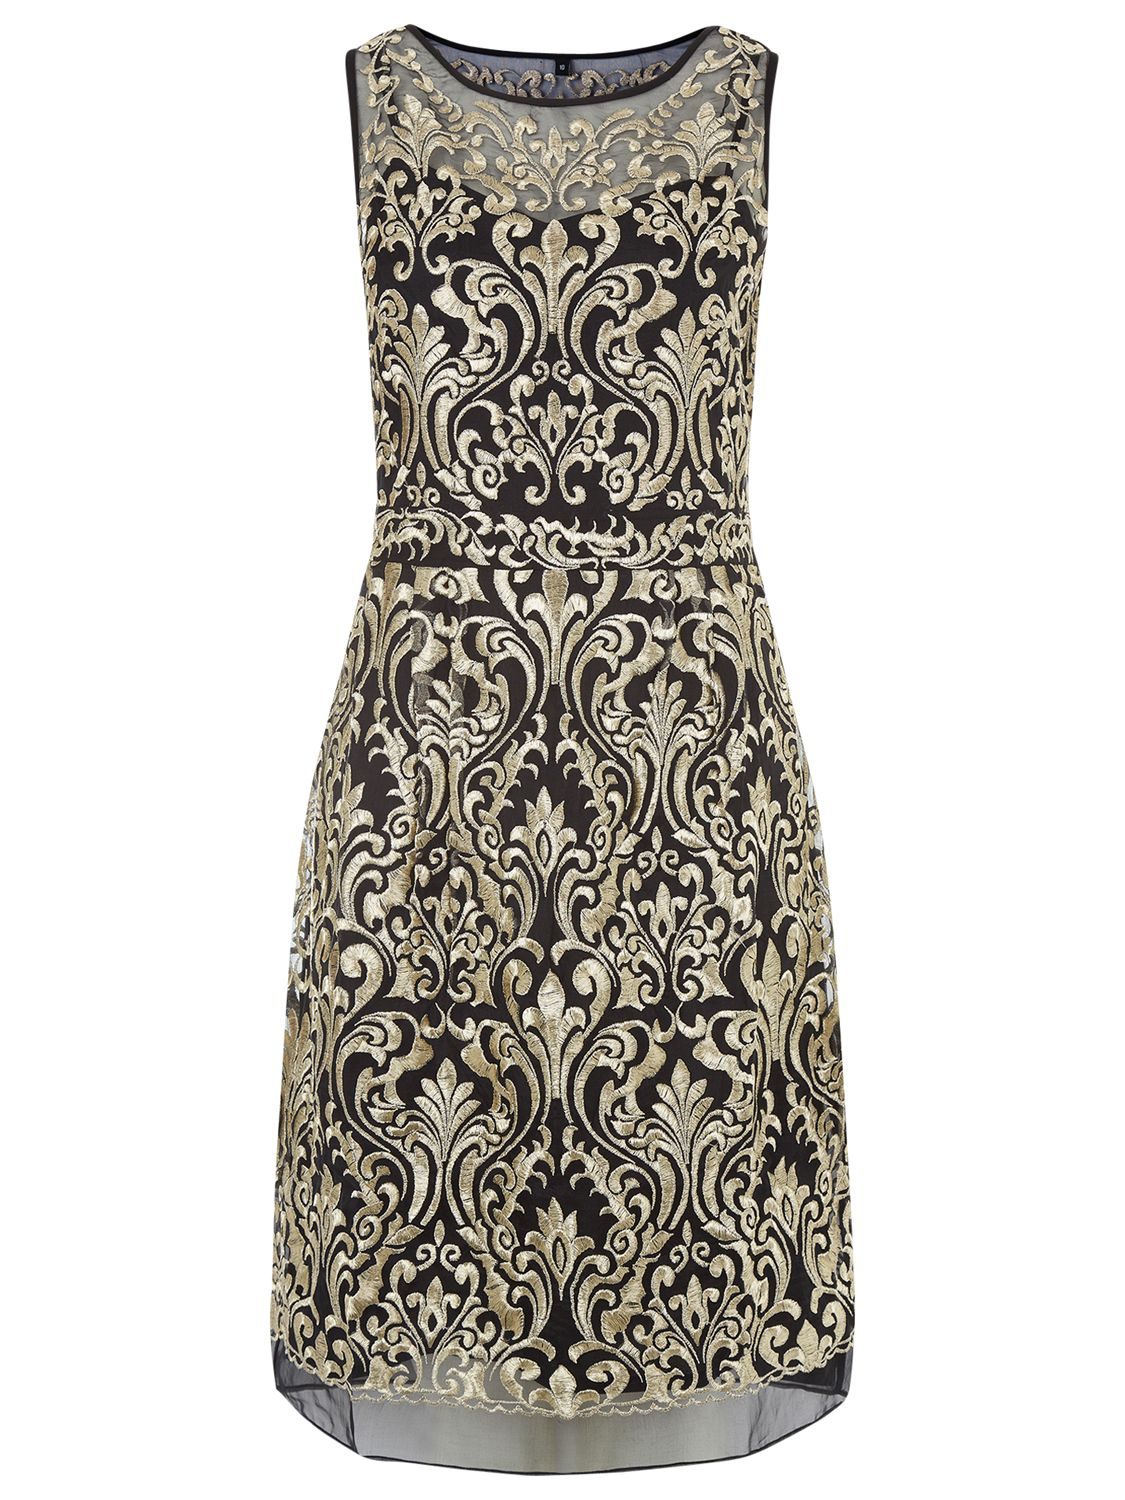 kaliko embroidered silk dress black / gold, kaliko, embroidered, silk, dress, black, gold, 8|18|16|10|14|12, clearance, womenswear offers, womens dresses offers, new years party offers, special offers, 20% off selected kaliko, women, inactive womenswear, new reductions, womens dresses, 1742128